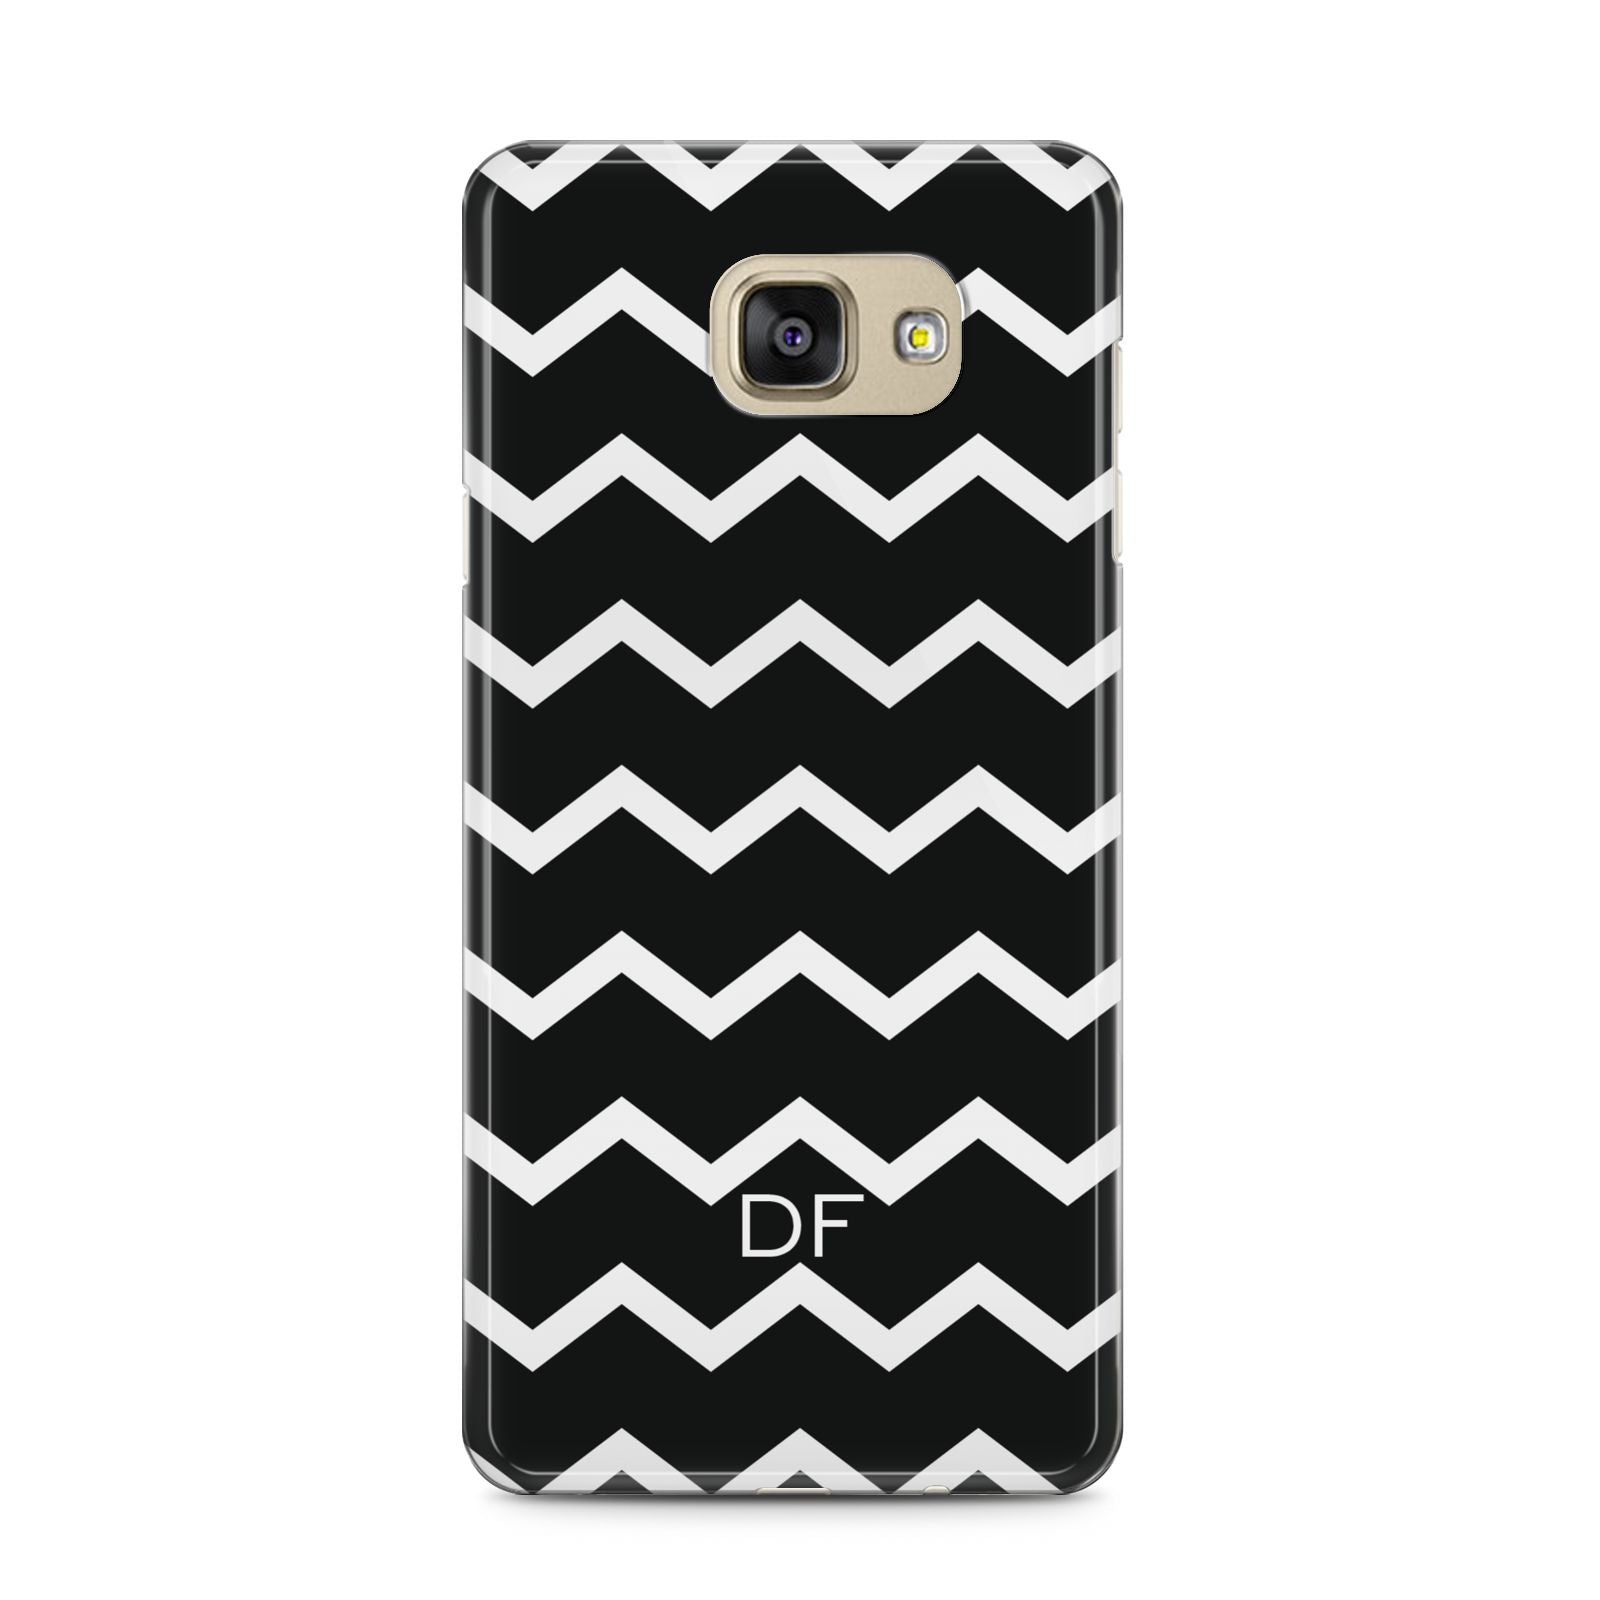 Personalised Chevron Black Samsung Galaxy A5 2016 Case on gold phone